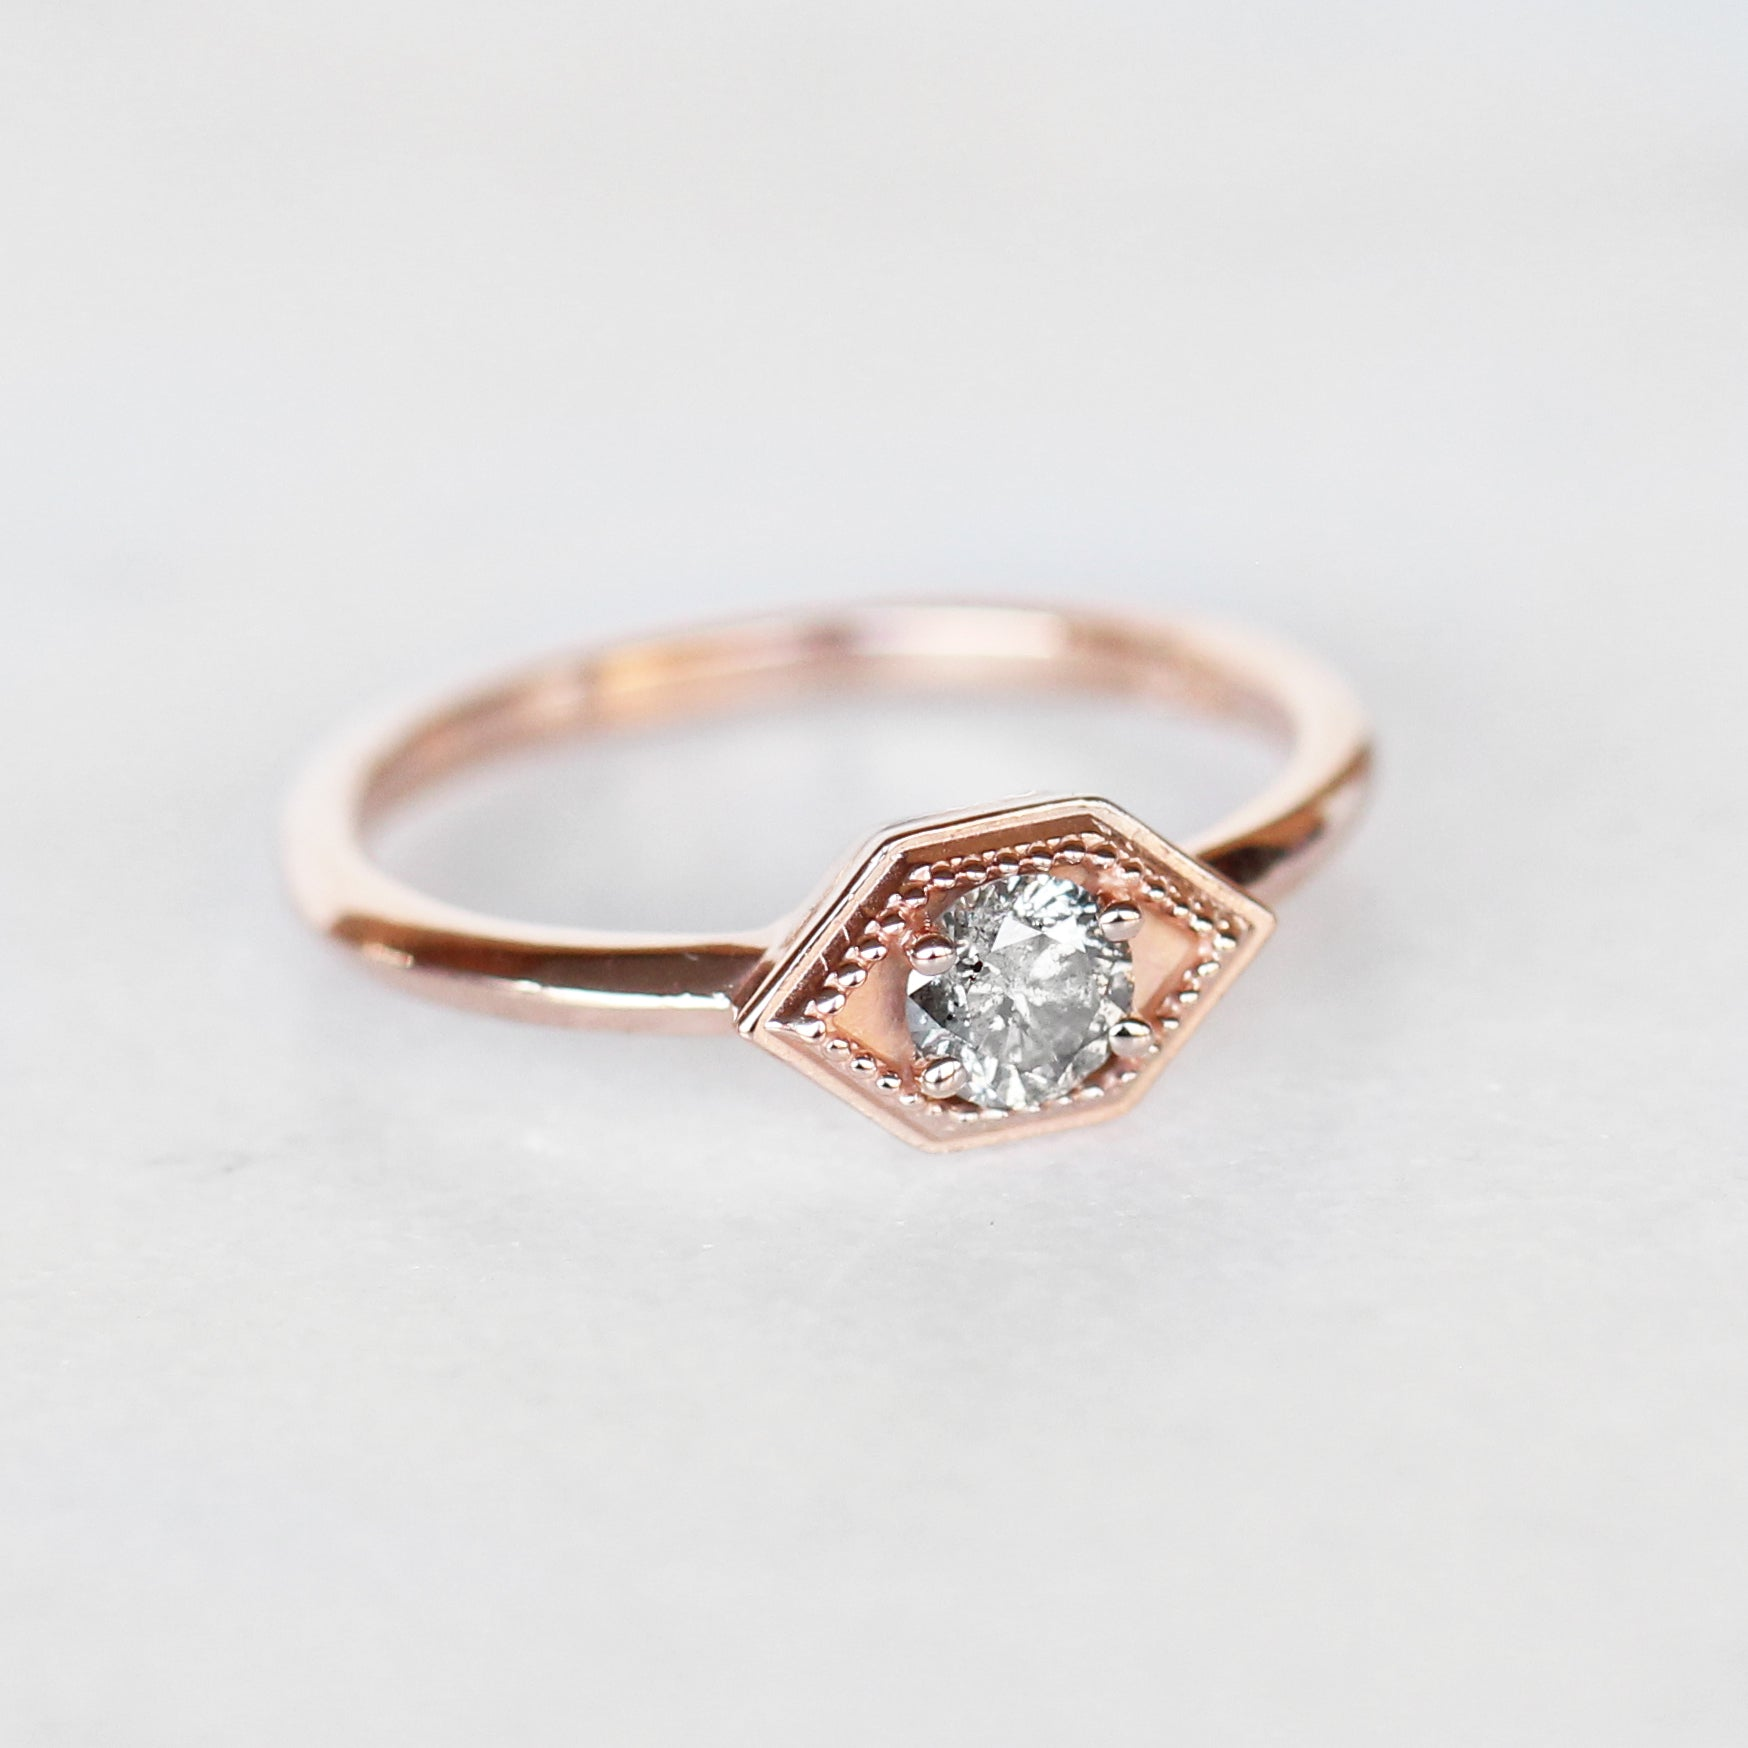 Melissa Ring with Gray Celestial Diamond in 10k Rose Gold - Made to Order - Midwinter Co. Alternative Bridal Rings and Modern Fine Jewelry